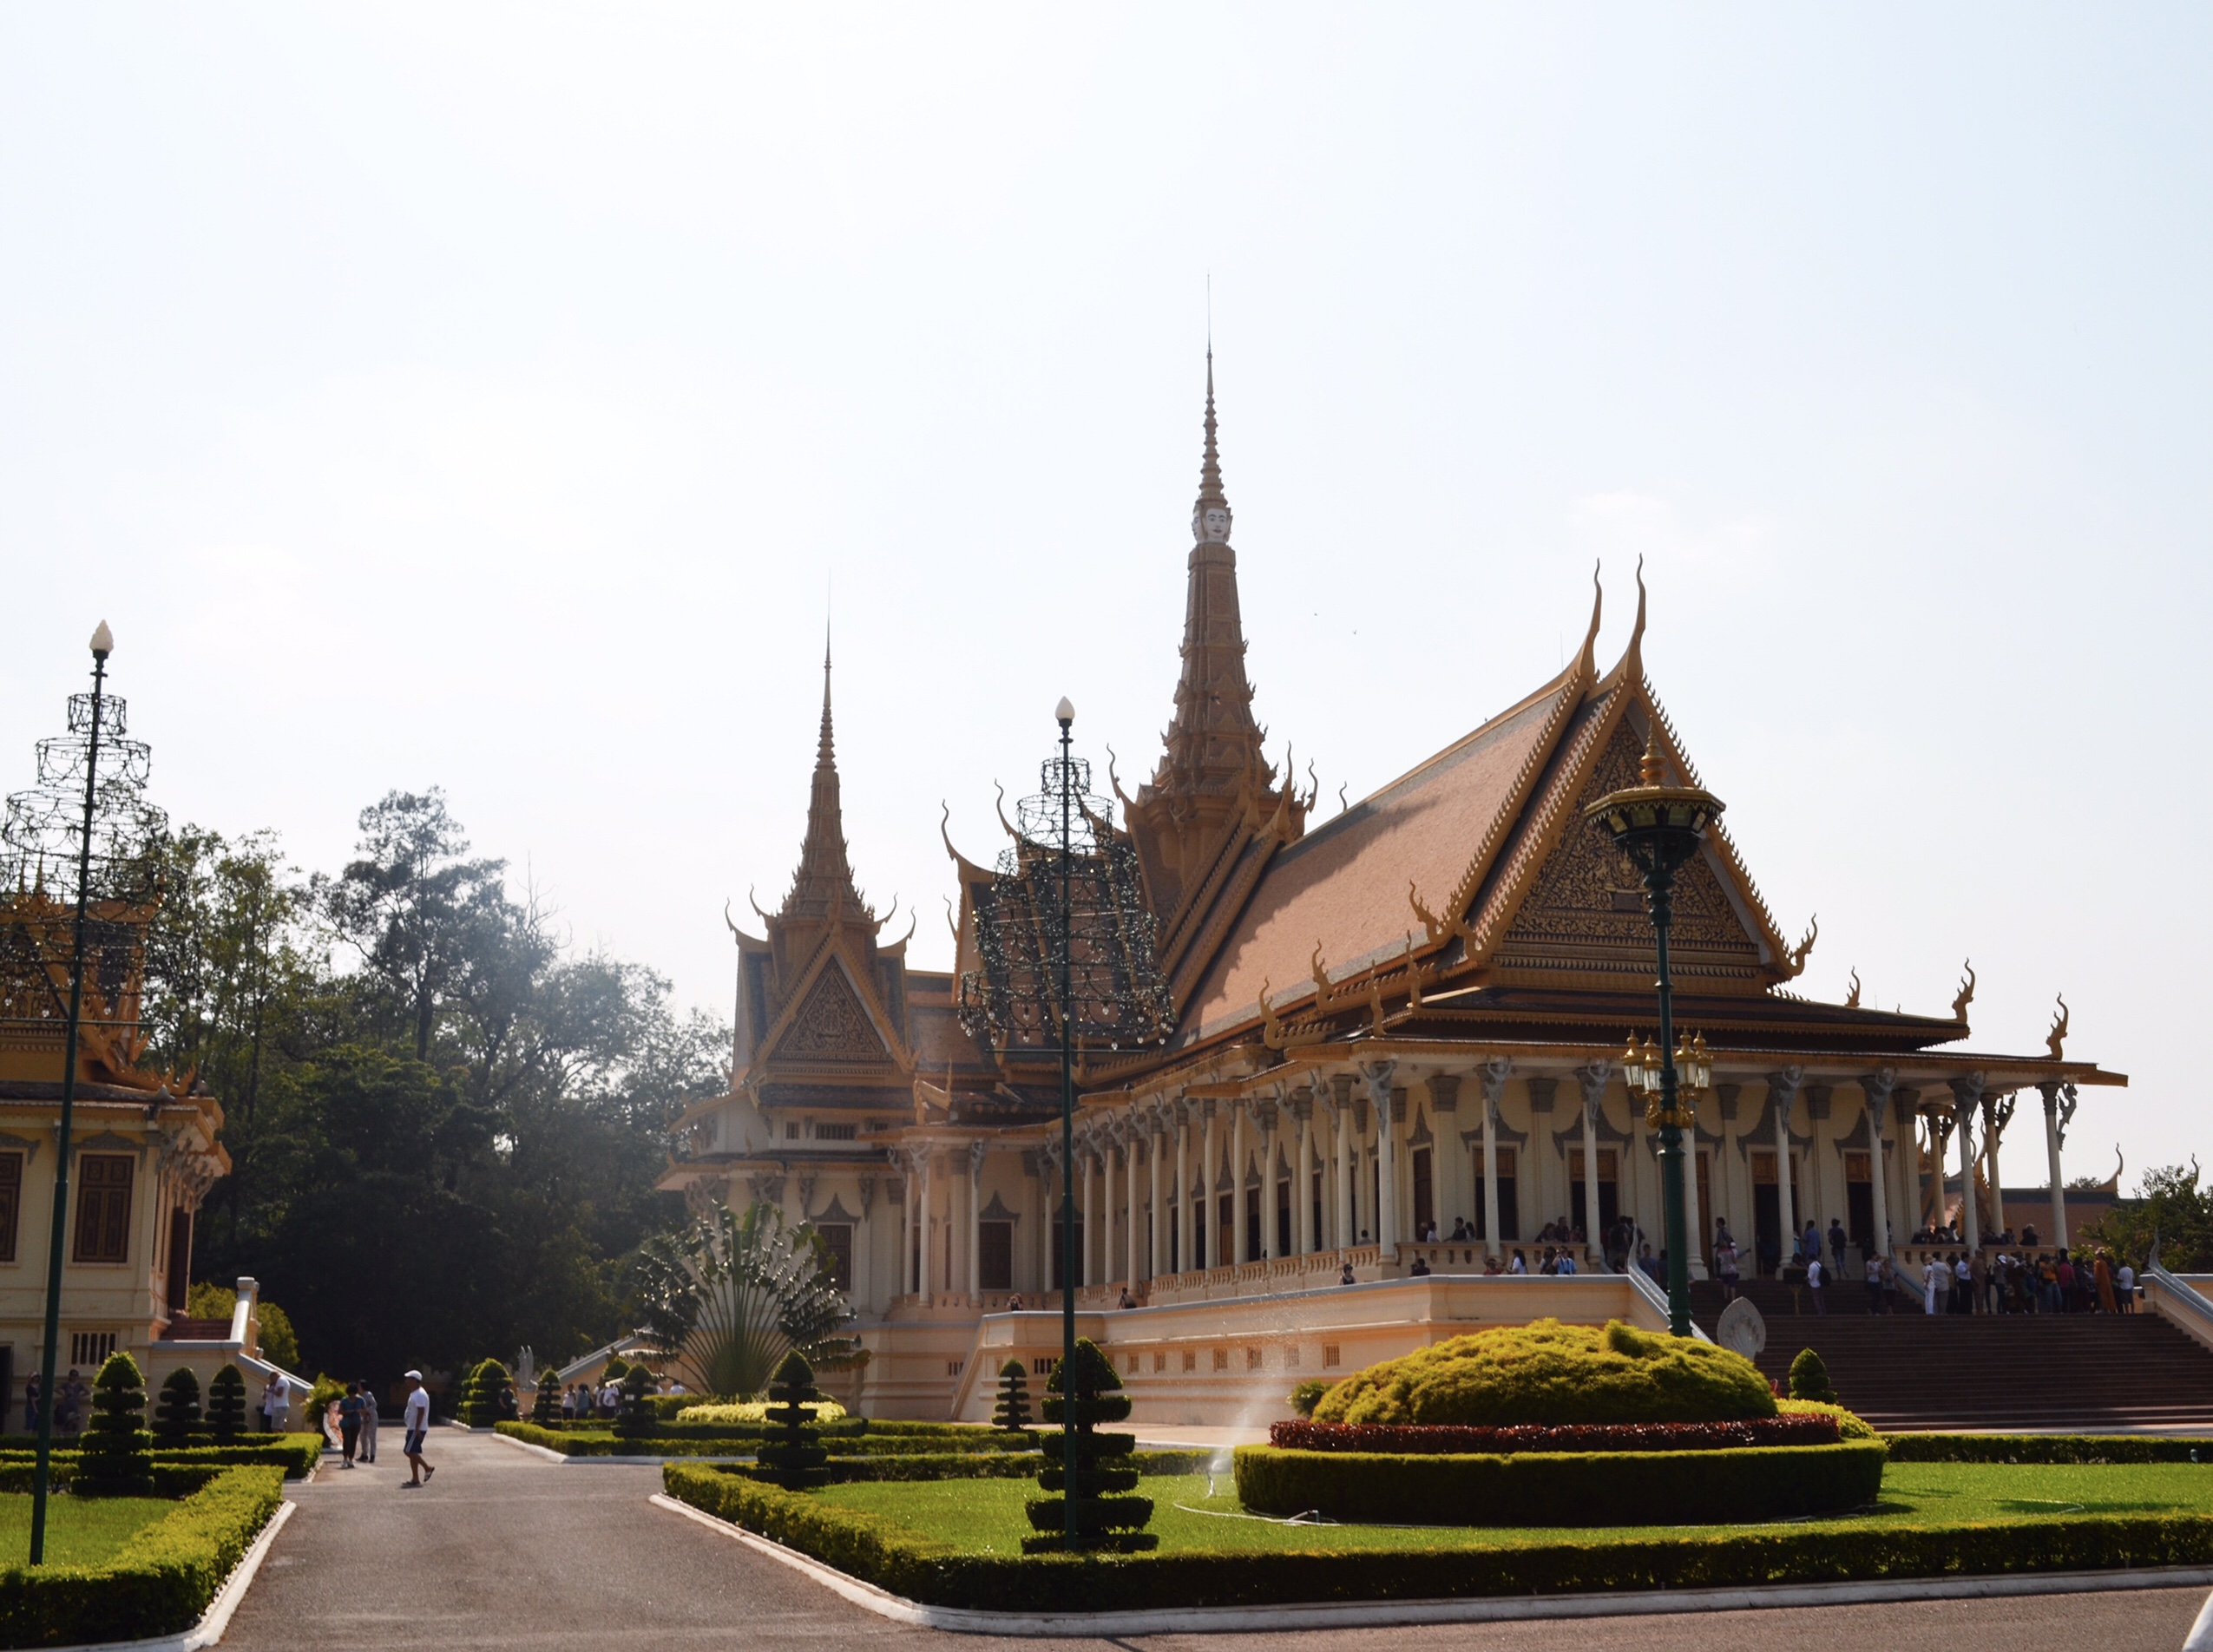 Image of royal palace in Cambodia